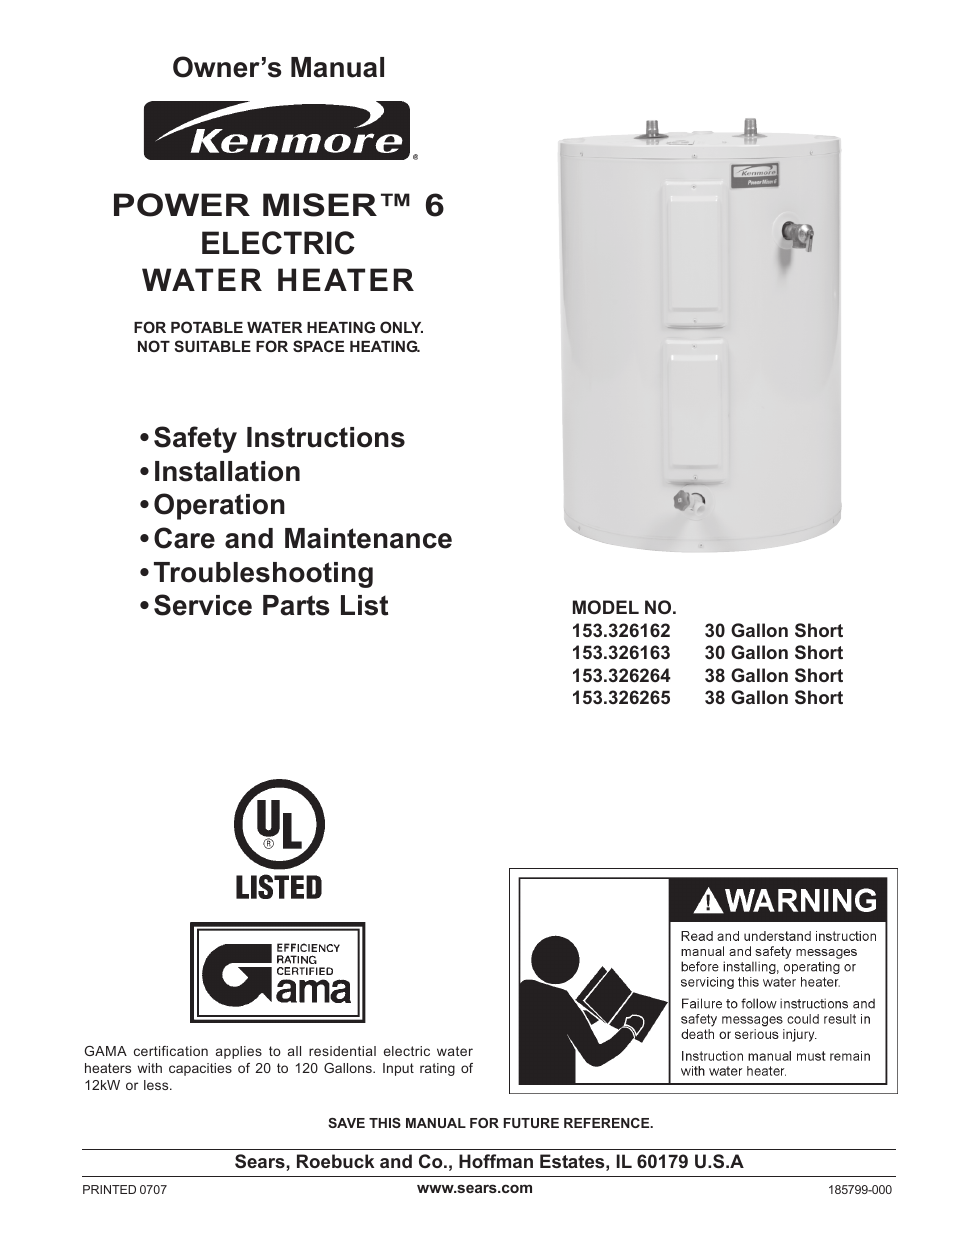 Sears Electric Water Heater Wiring Diagram Simple Thermostat Kenmore Power Miser 153 326265 User Manual 28 Pages Also For